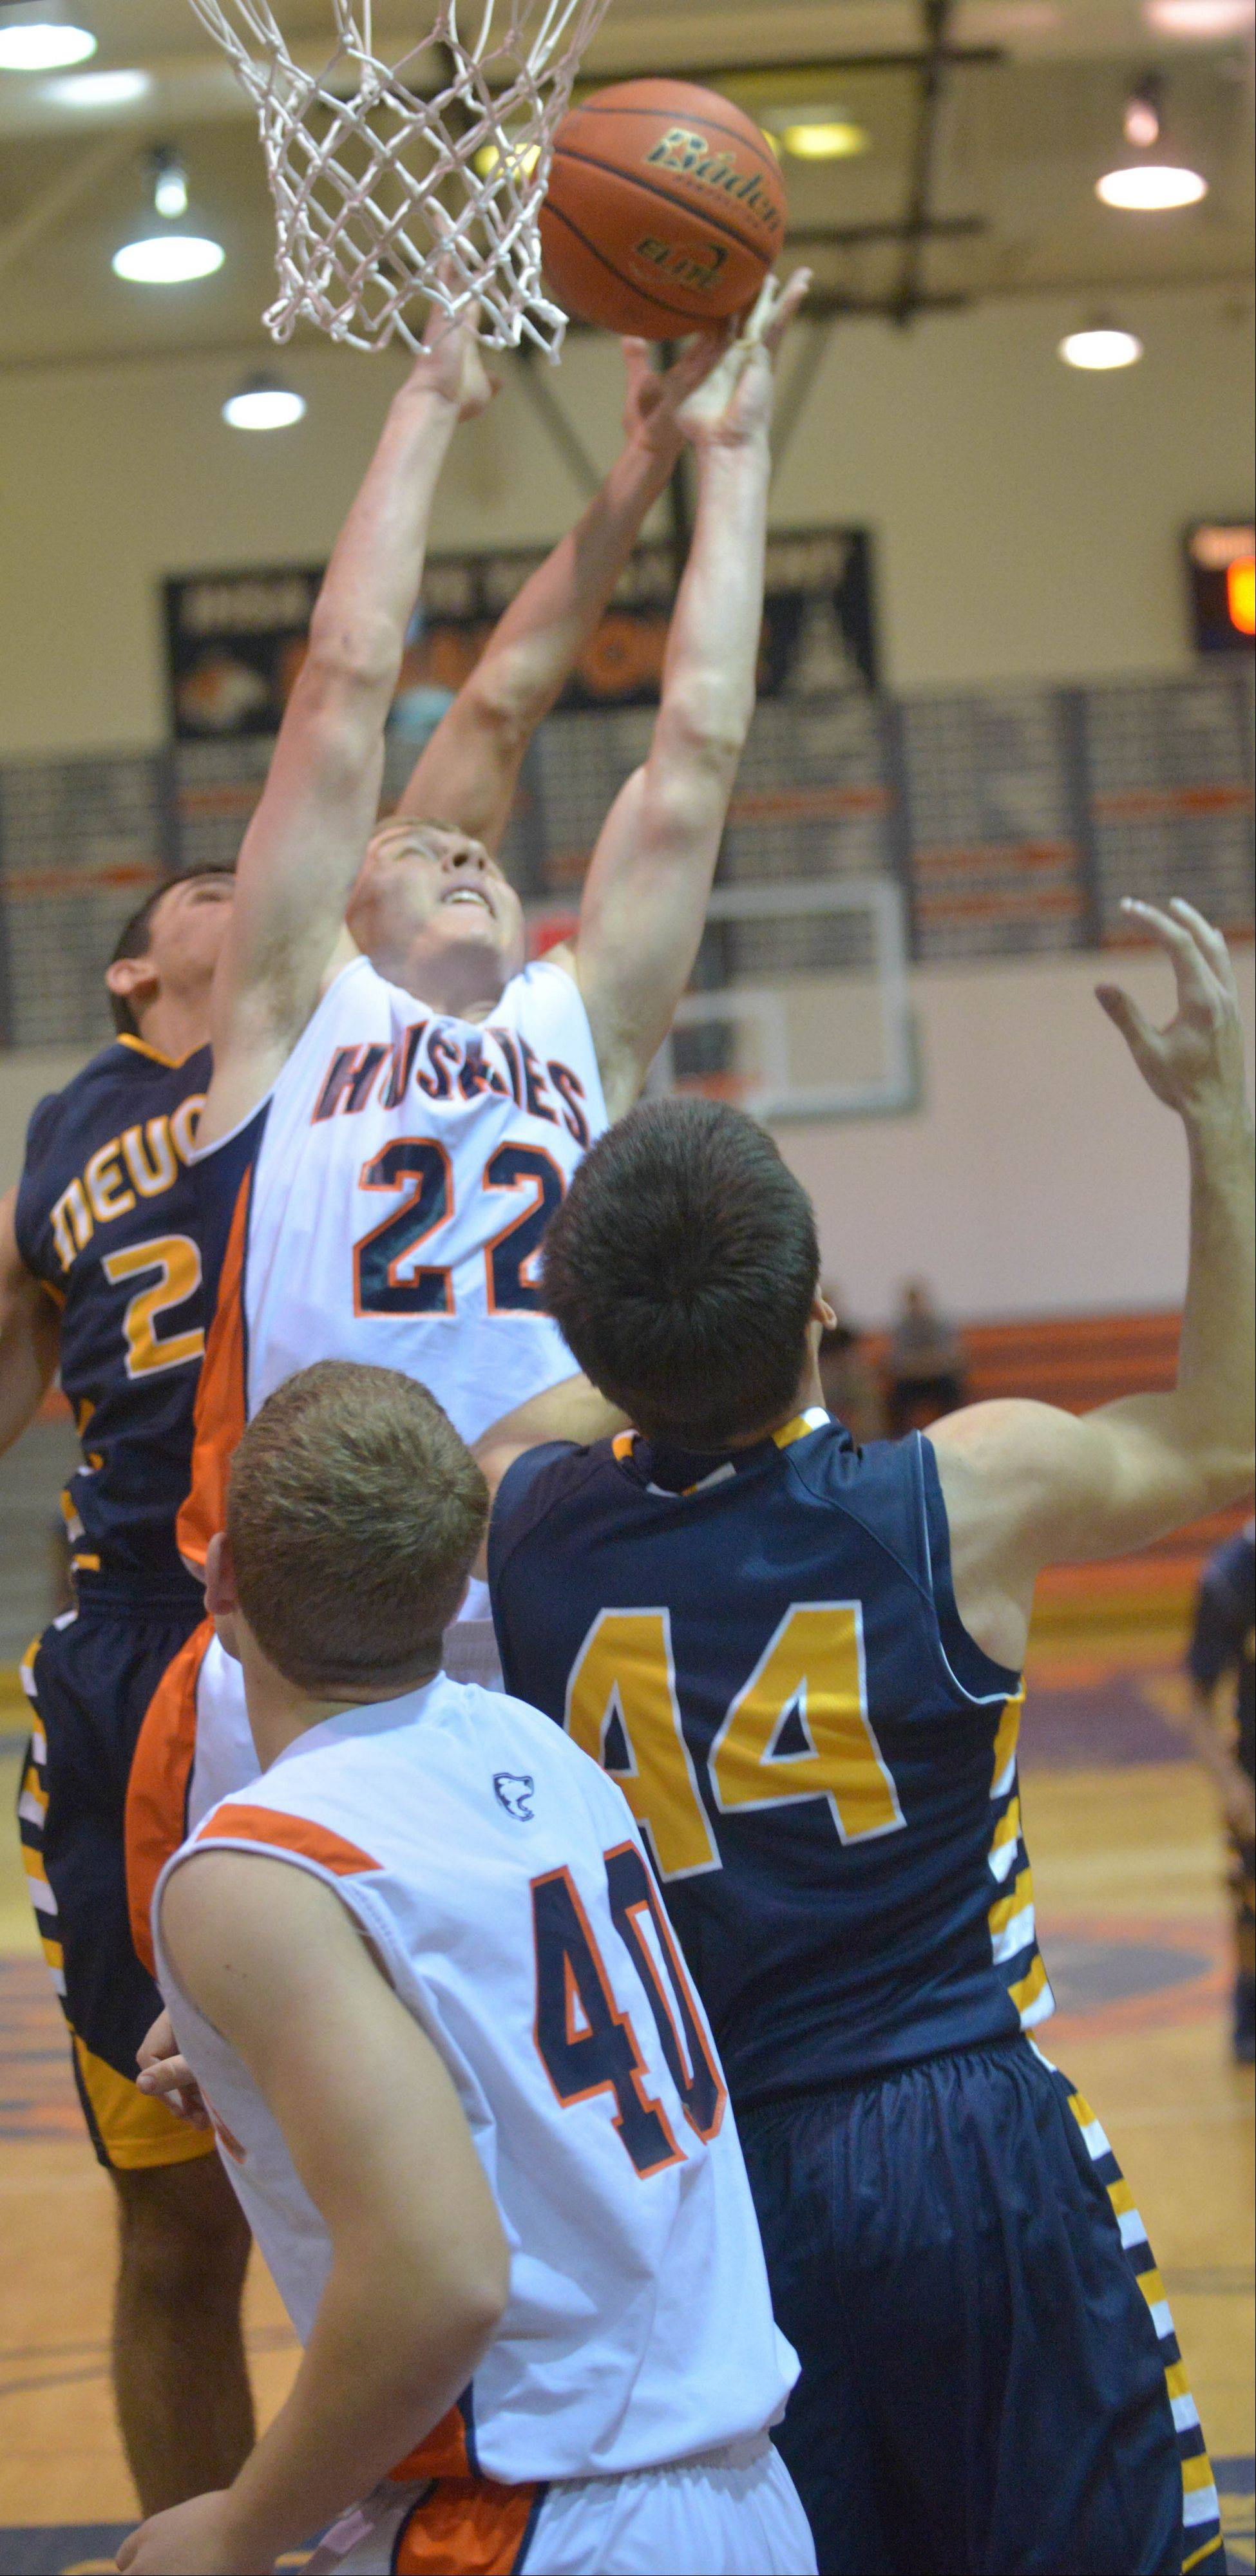 Naperville North spreads the floor, gets win